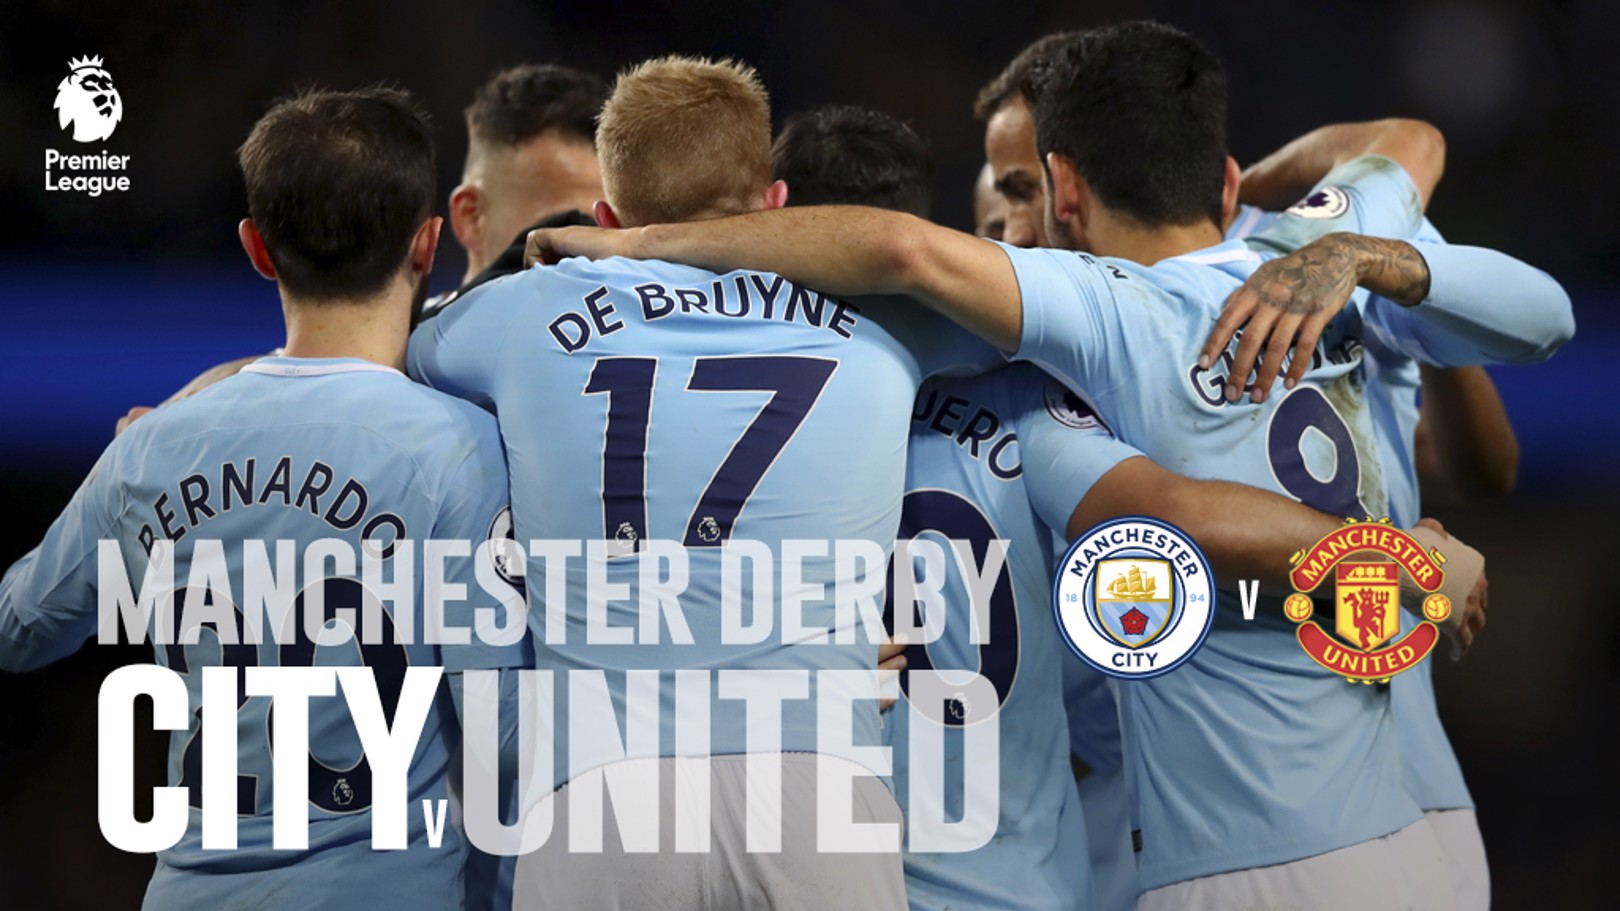 CITY-UNITED. 33ª jornada de la Premier League.